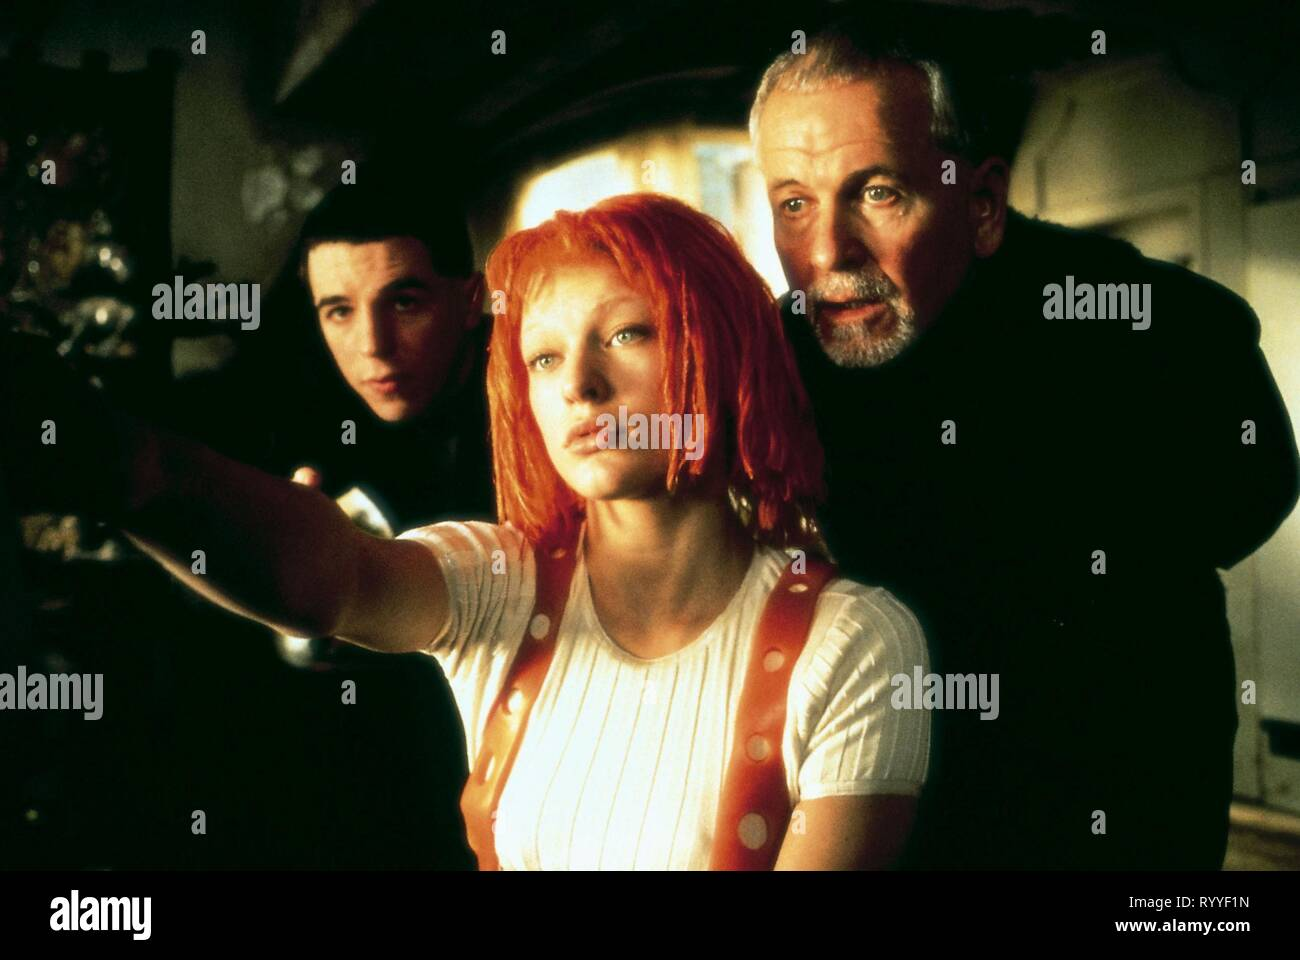 MILES,JOVOVICH,HOLM, THE FIFTH ELEMENT, 1997 - Stock Image